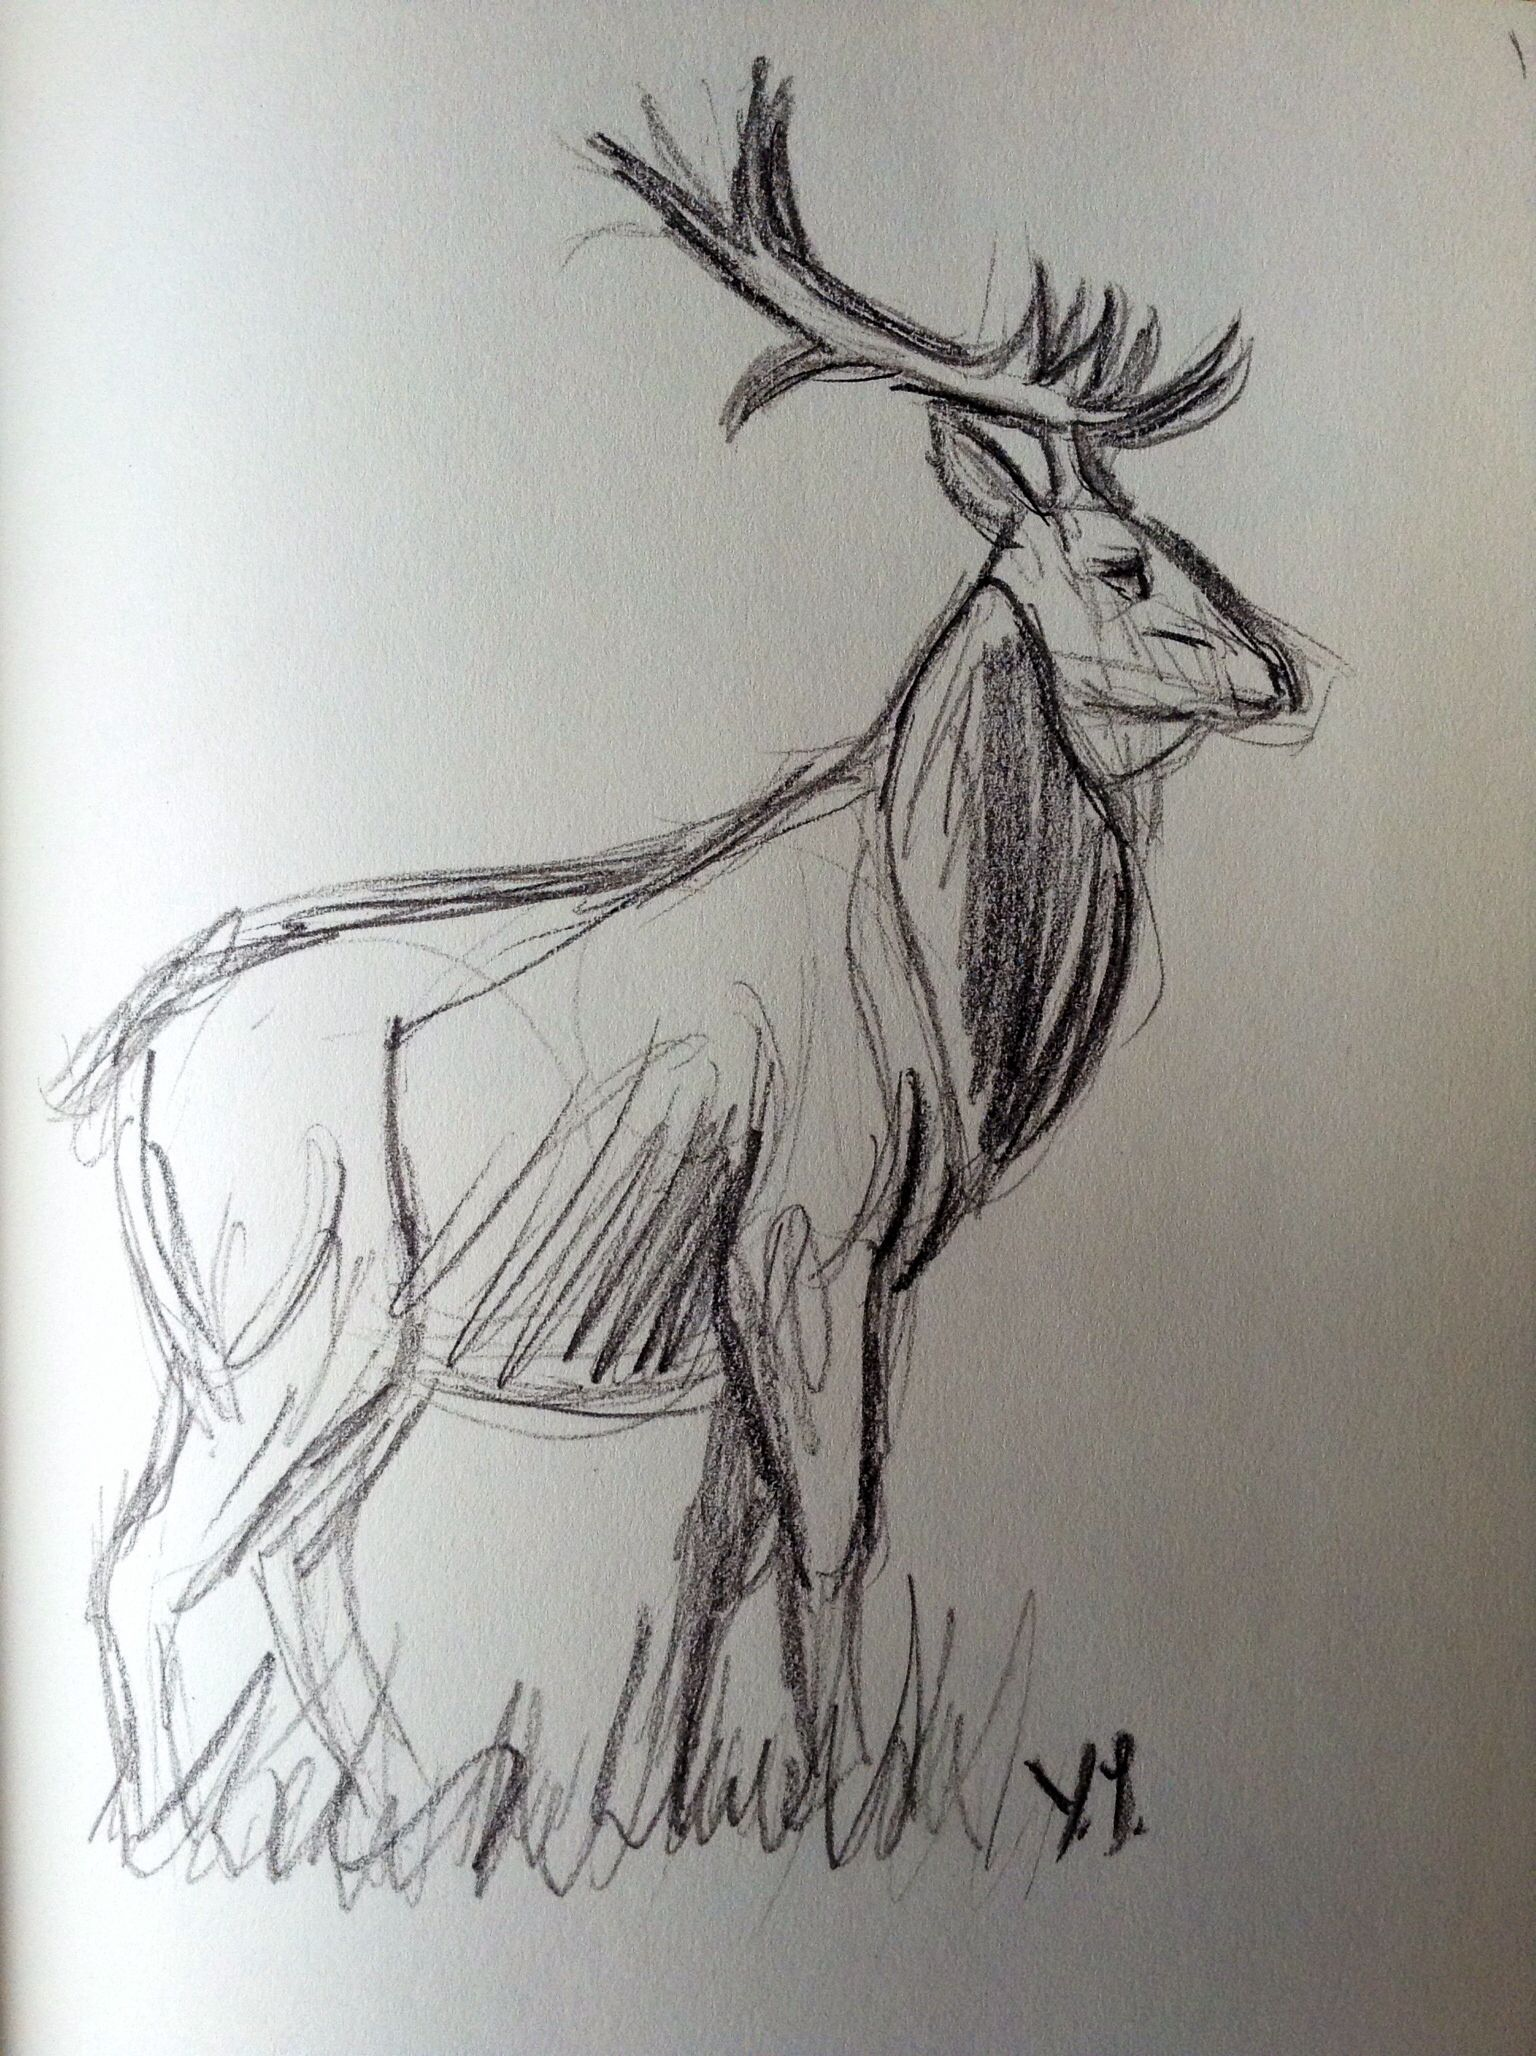 Quick sketch of a deer. By Yenthe J.